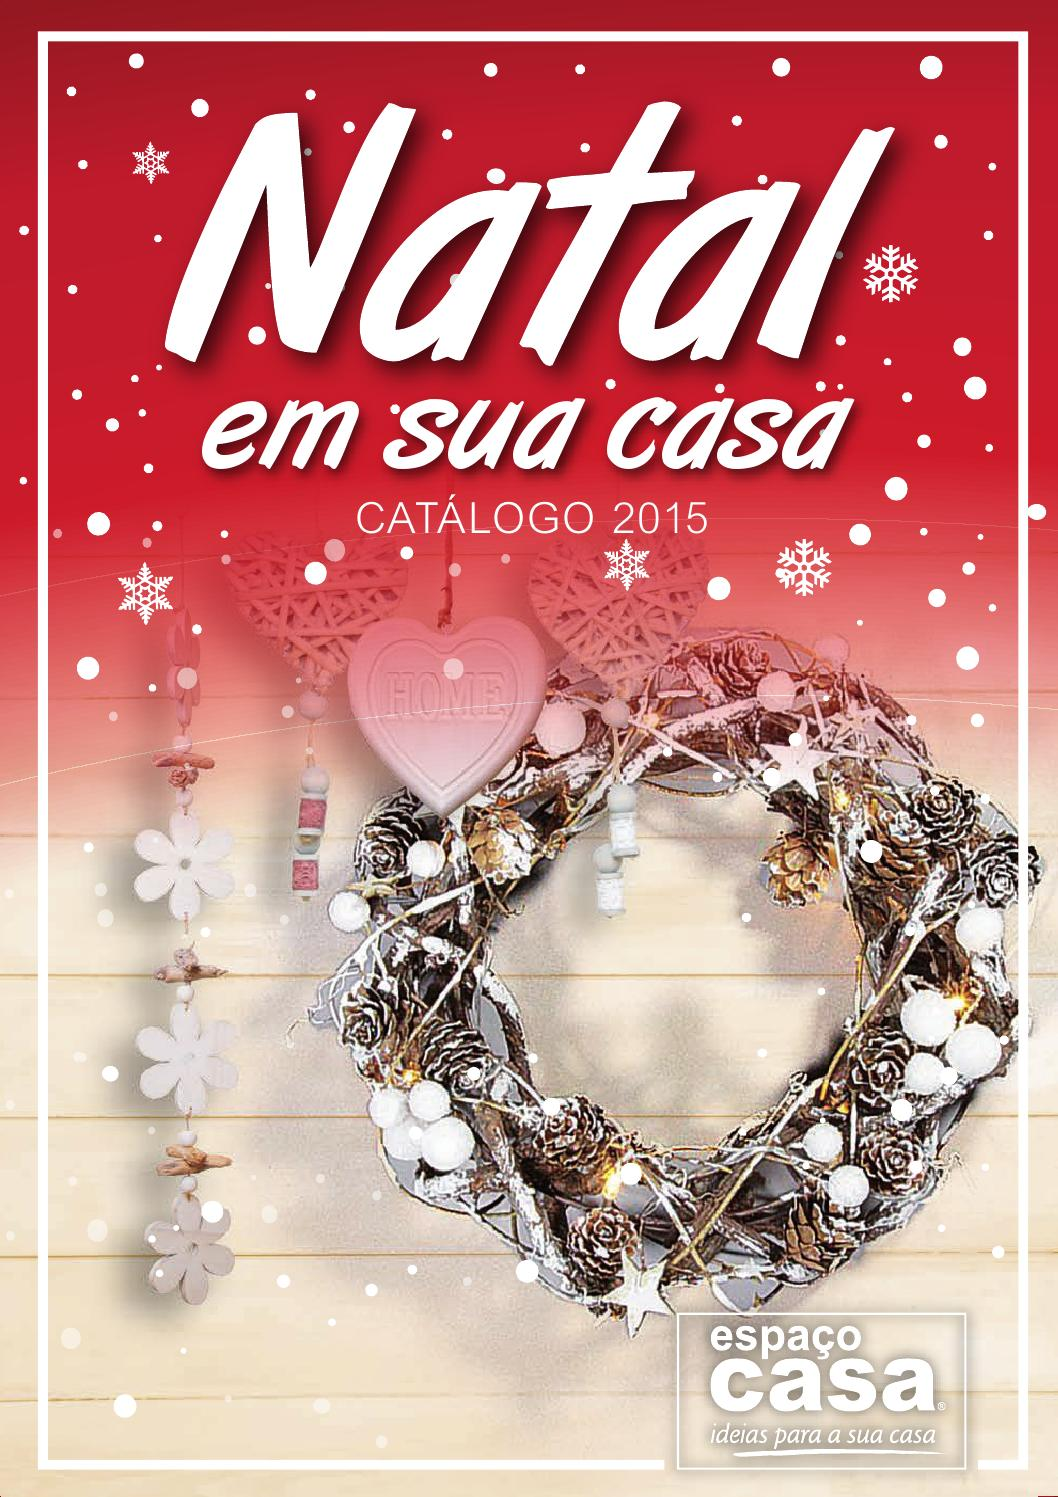 Catalogo natal 2015 espa o casa by espa o casa issuu for Catalogo casa